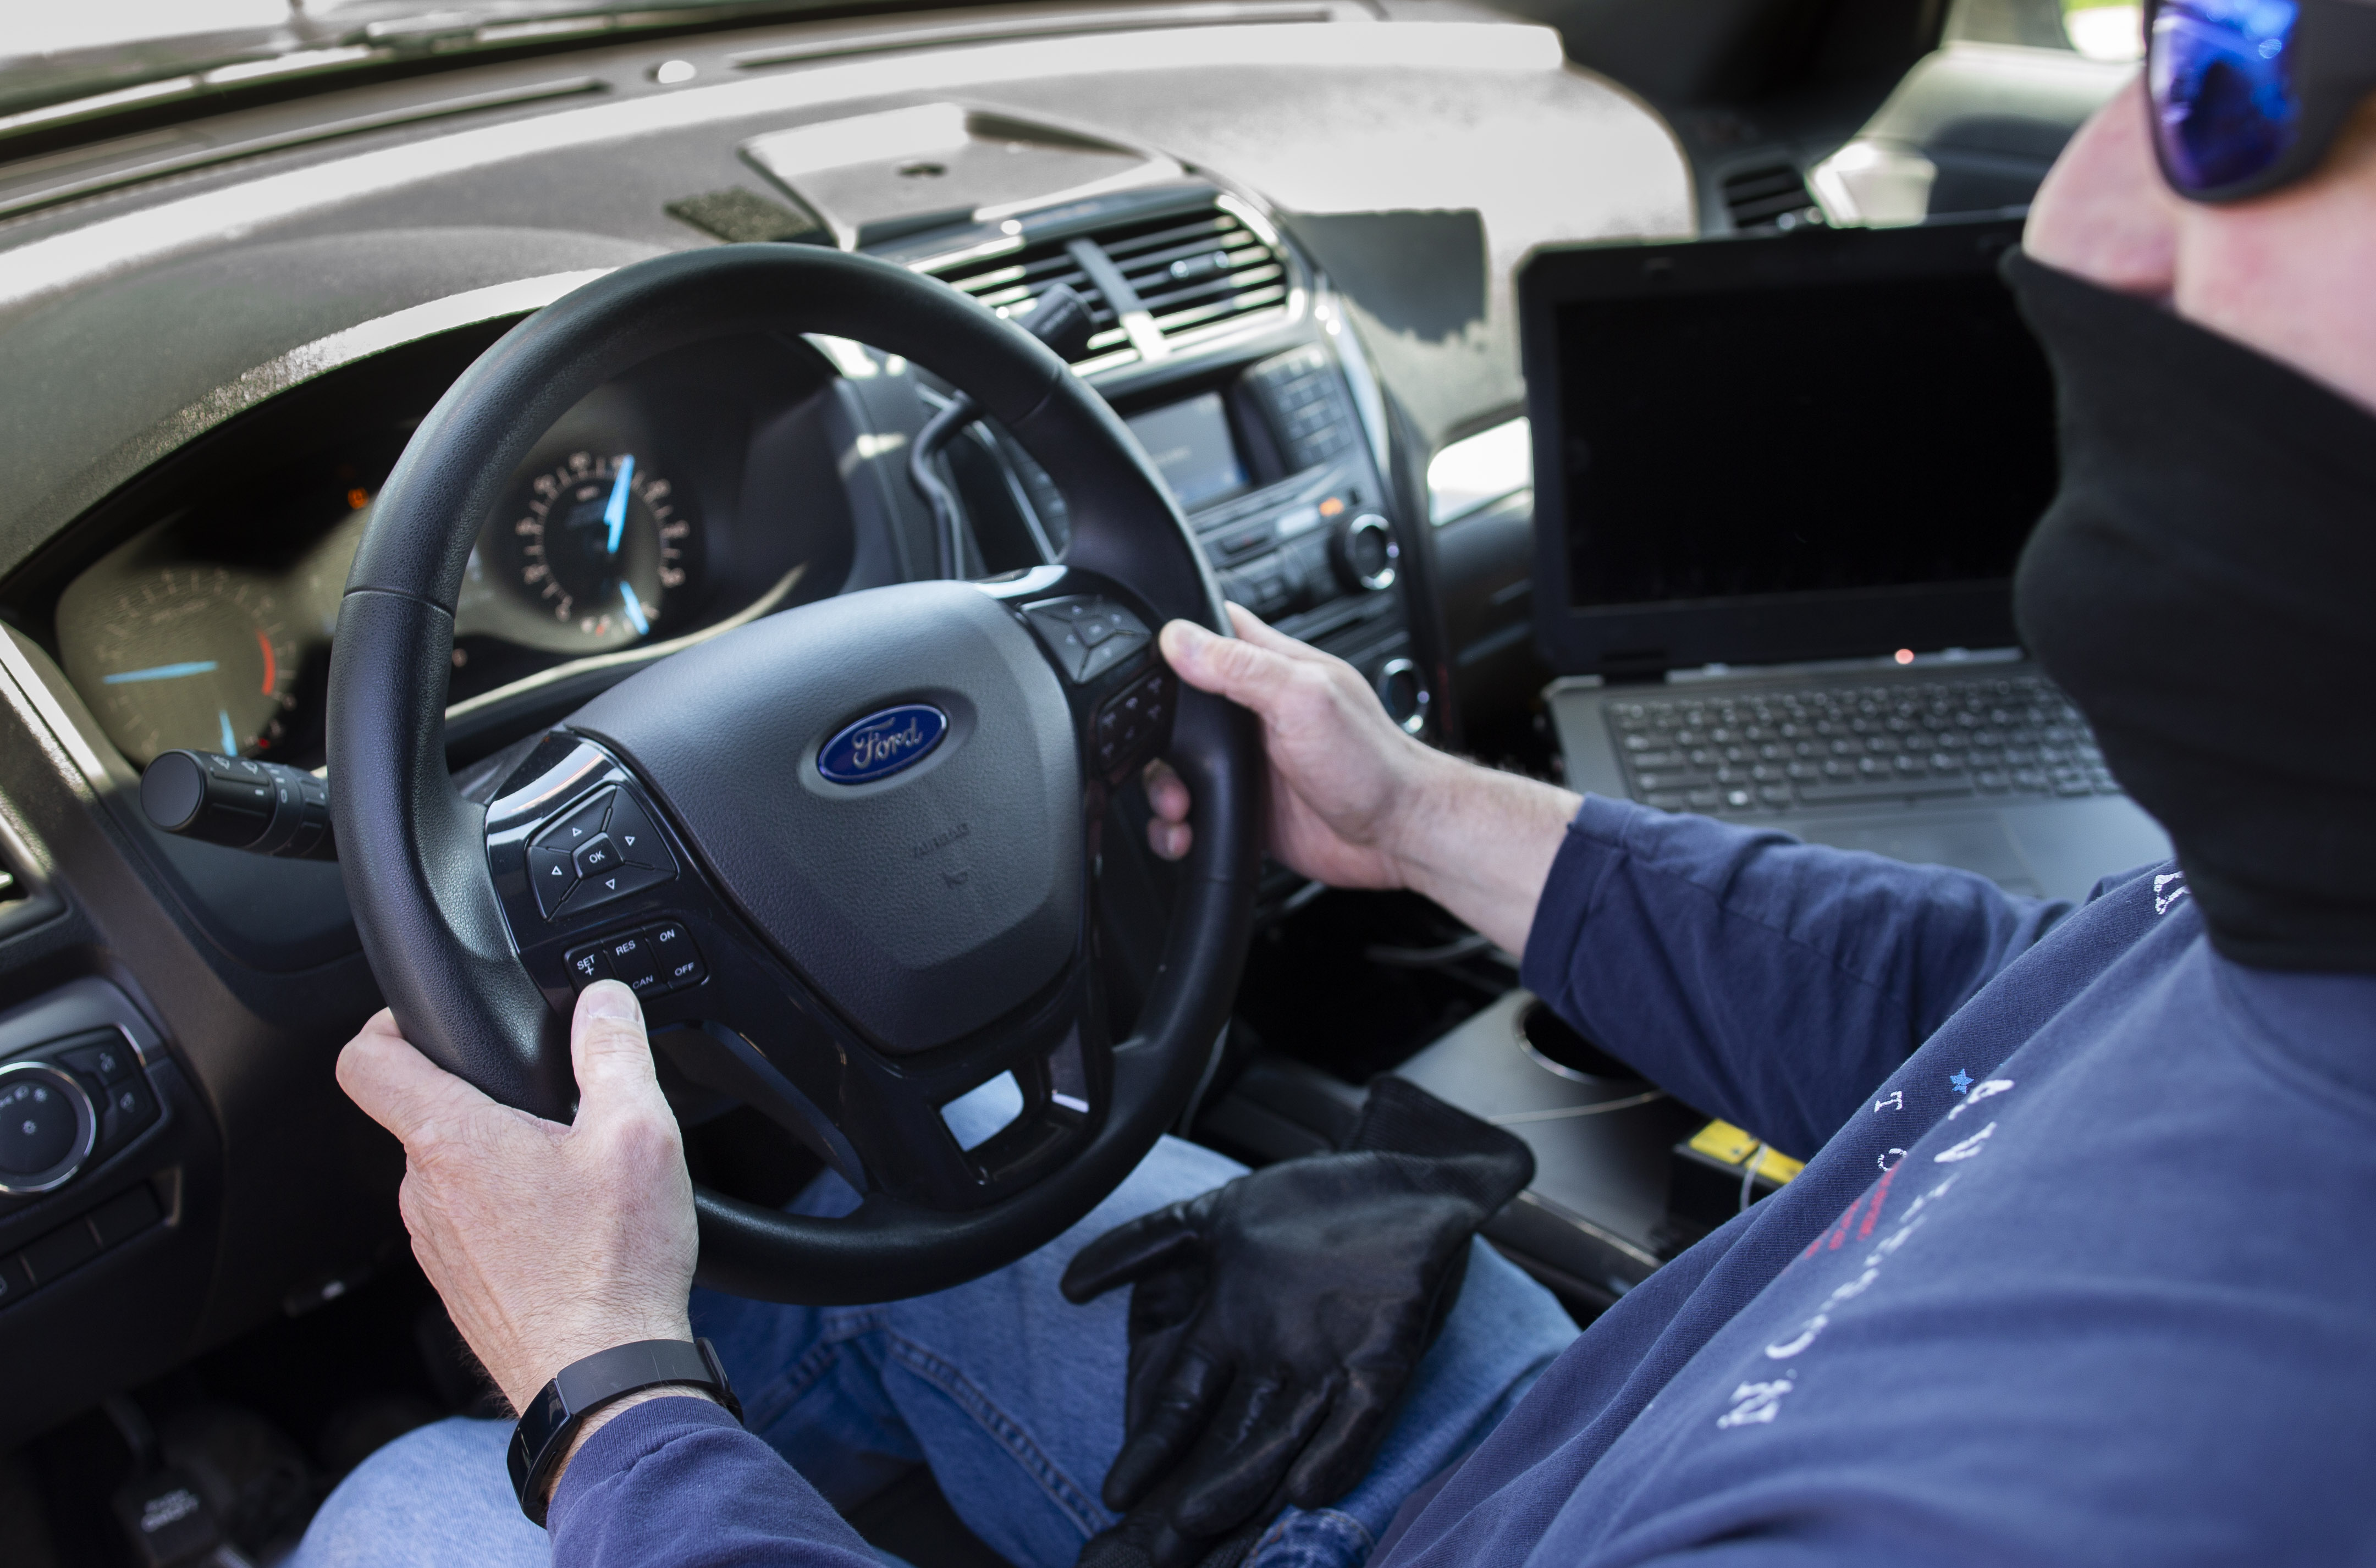 Sanitization Software in Police Interceptor Utility Vehicles